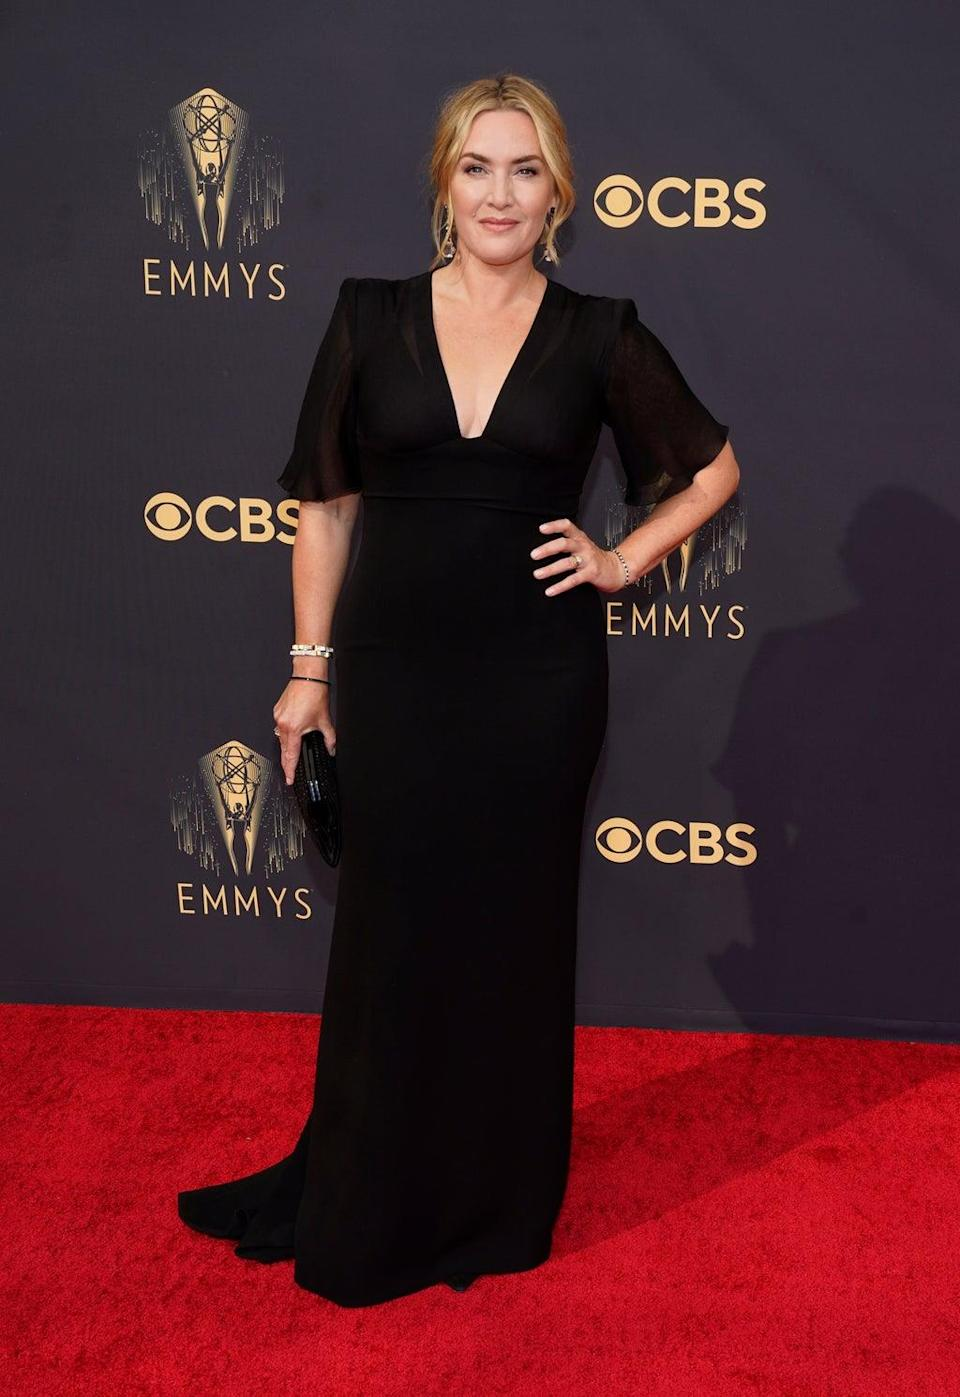 Kate Winslet was among the winners at the Emmys (AP Photo/Chris Pizzello)